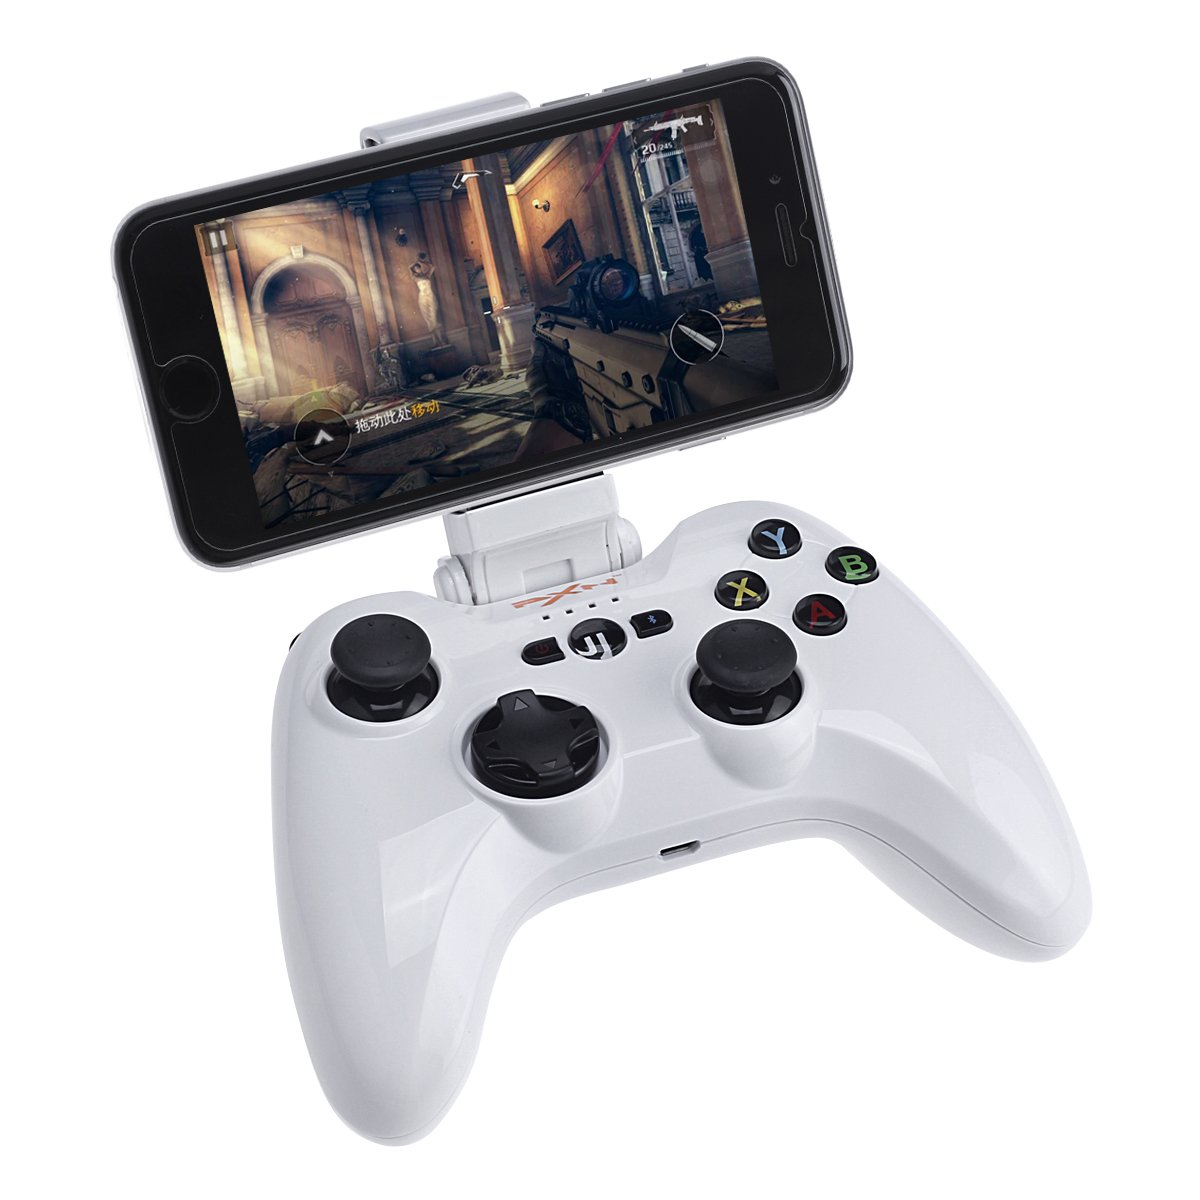 7 6S 6 5S 5 Megadream iOS MFi Gaming Joystick with Clamp Holder for iPhone Xs Direct Play 8 Plus 7 Plus XR X iPad 8 iPad Pro Air Mini Wireless Gamepad Controller Apple TV